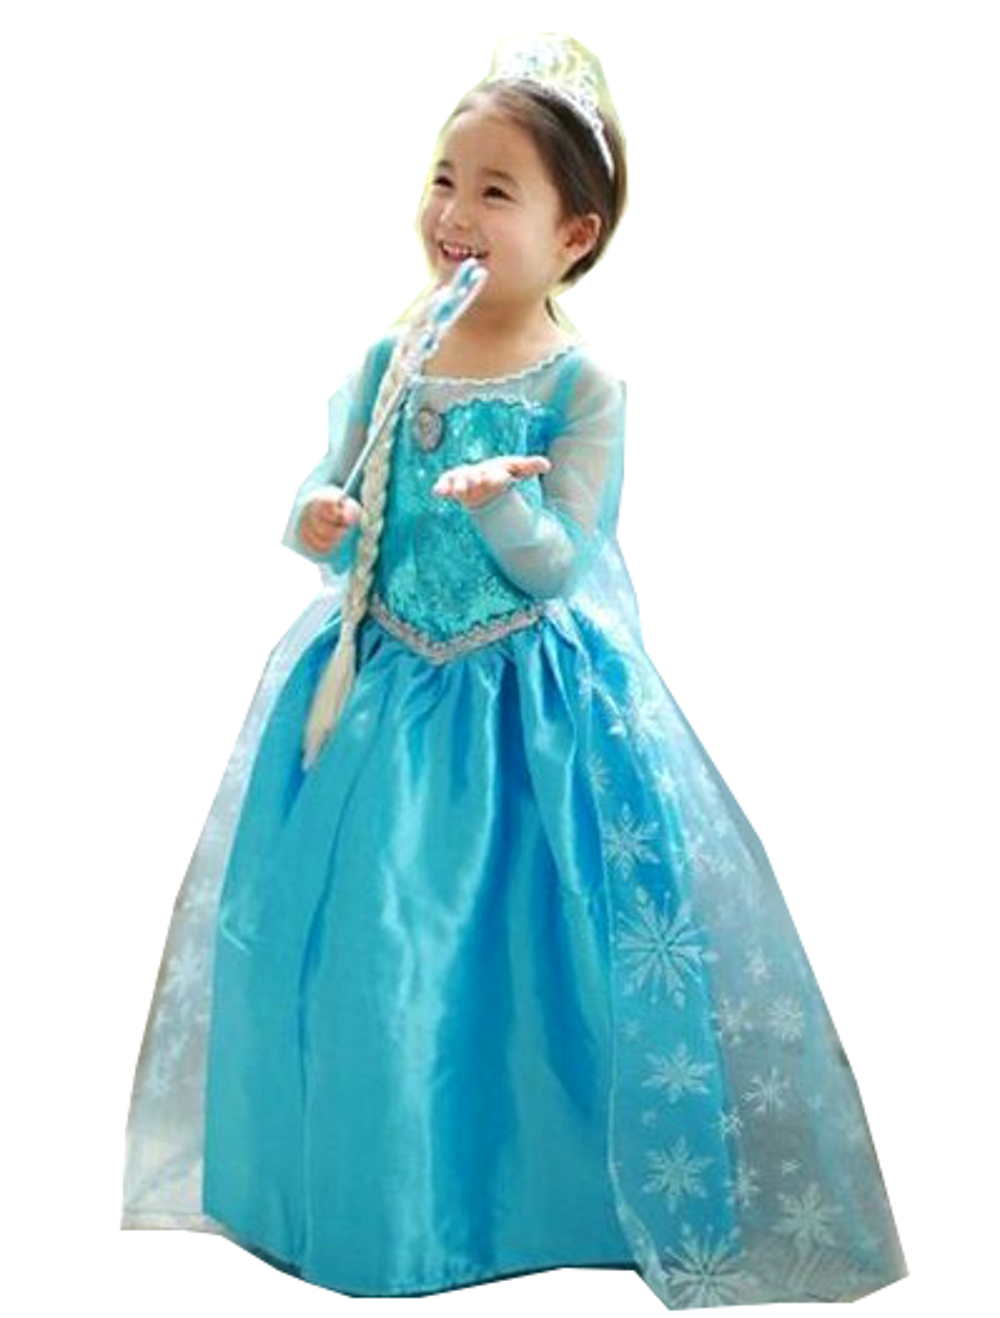 princess inspired elsa girls costume dress blue princess costume. Black Bedroom Furniture Sets. Home Design Ideas